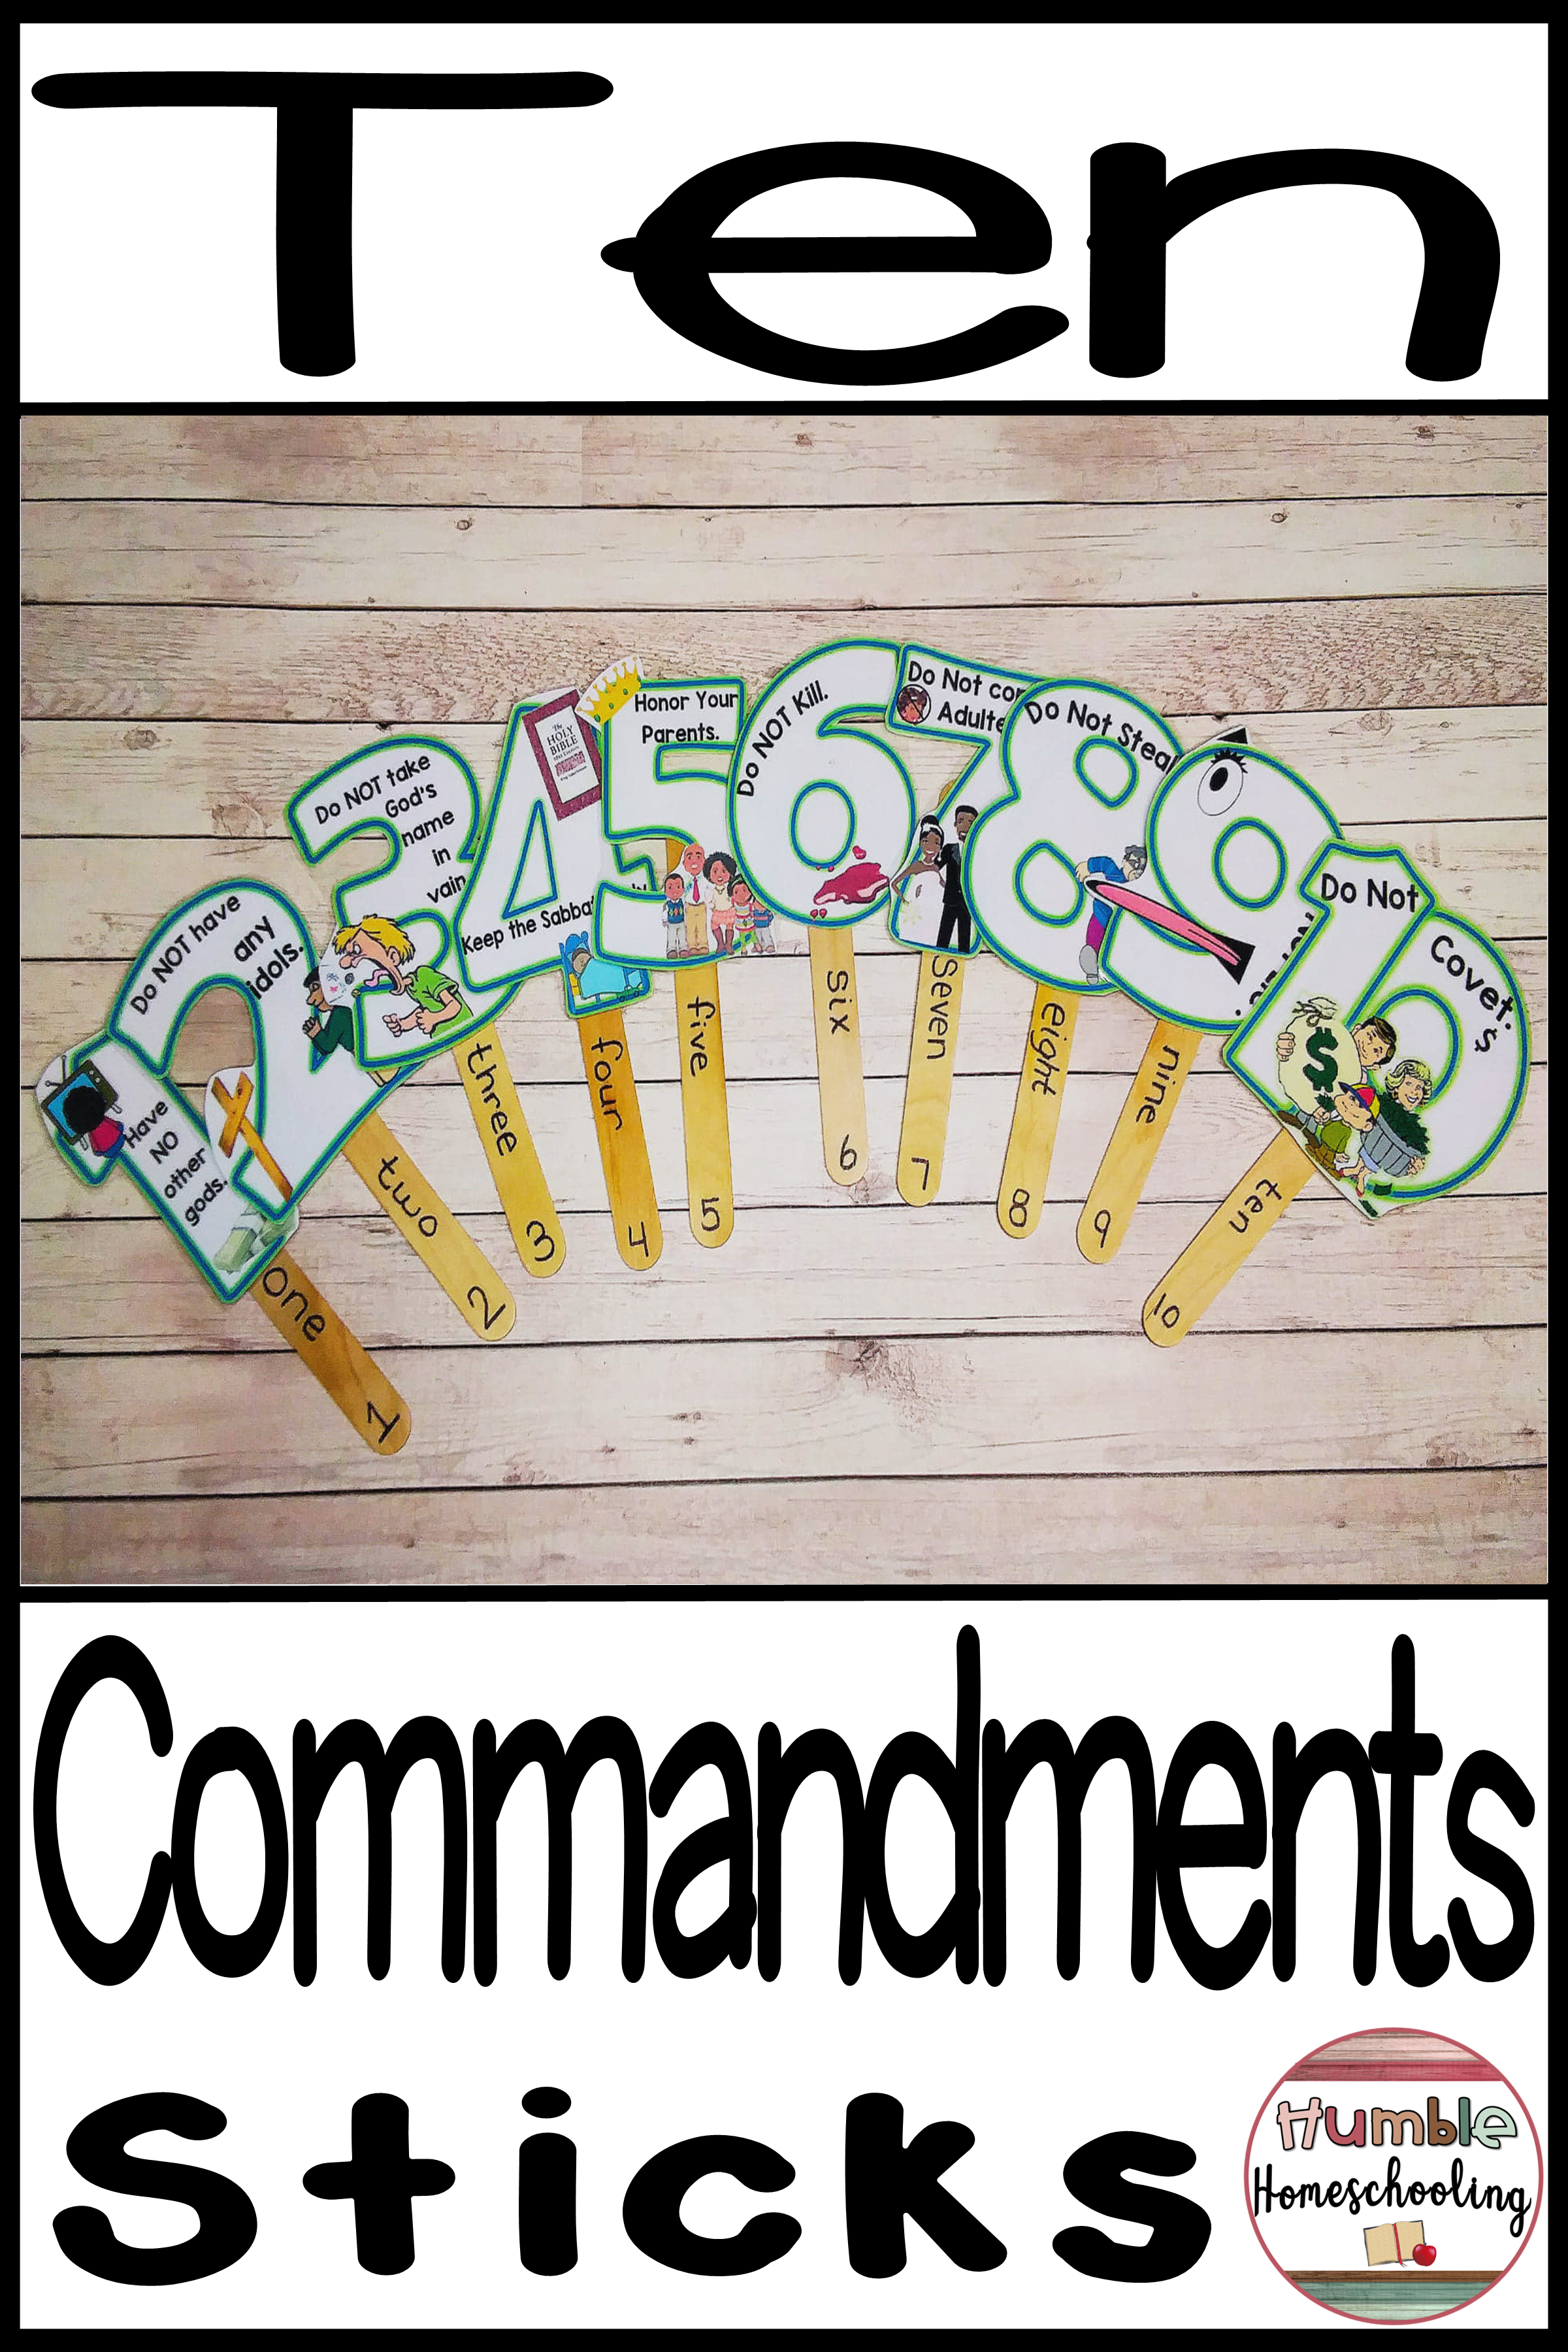 The 10 Commandments   Humble Homeschooling Learning Resources   Kids